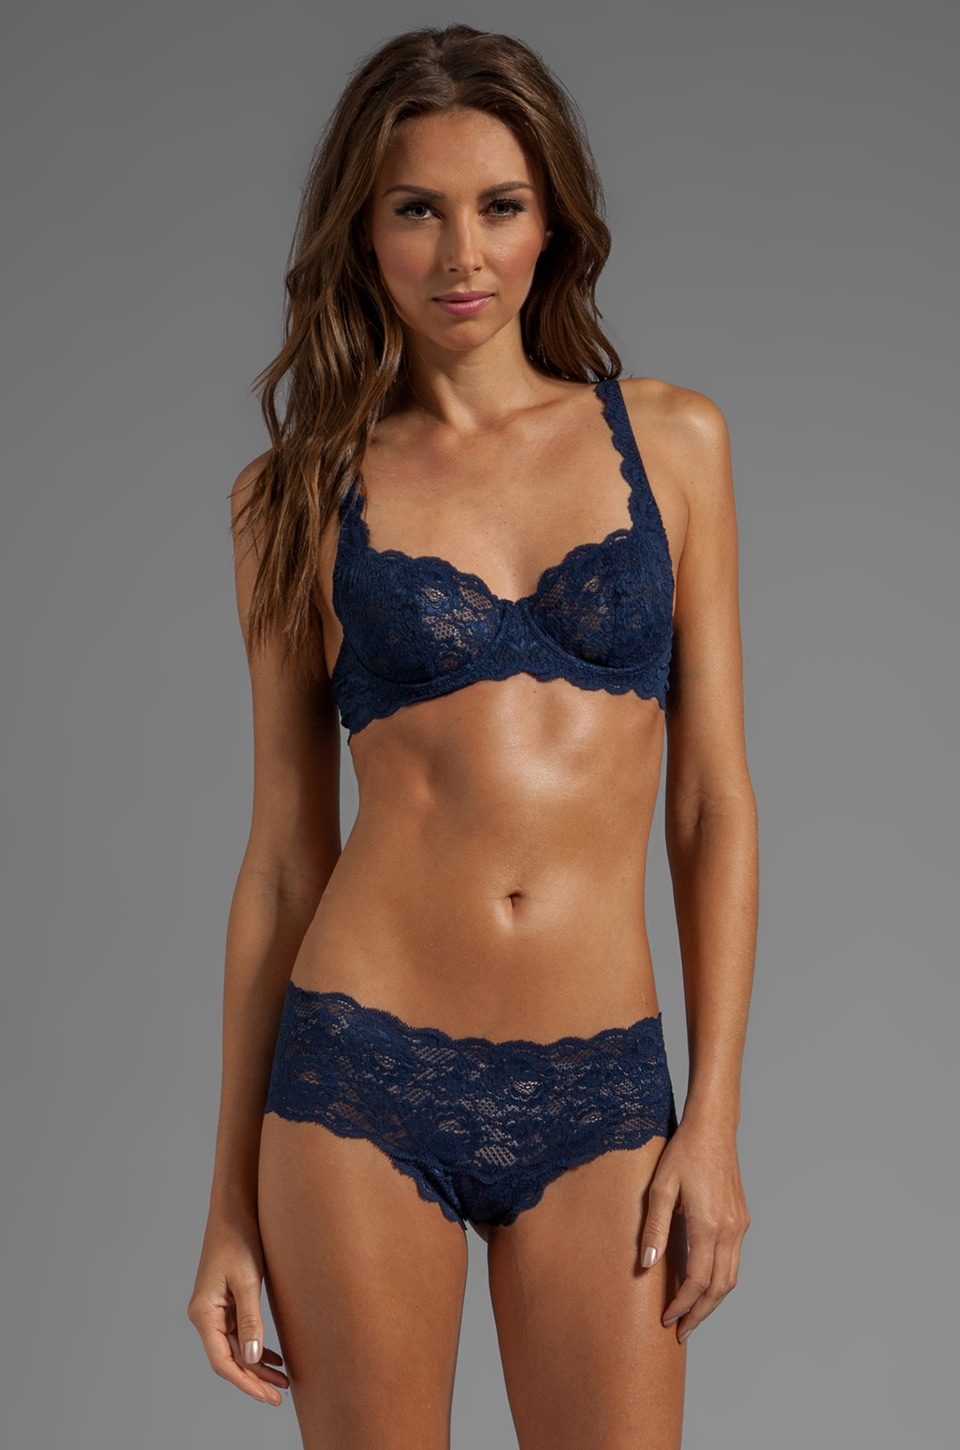 Cosabella Never Say Never Prettie Underwire Bra in Navy Blue